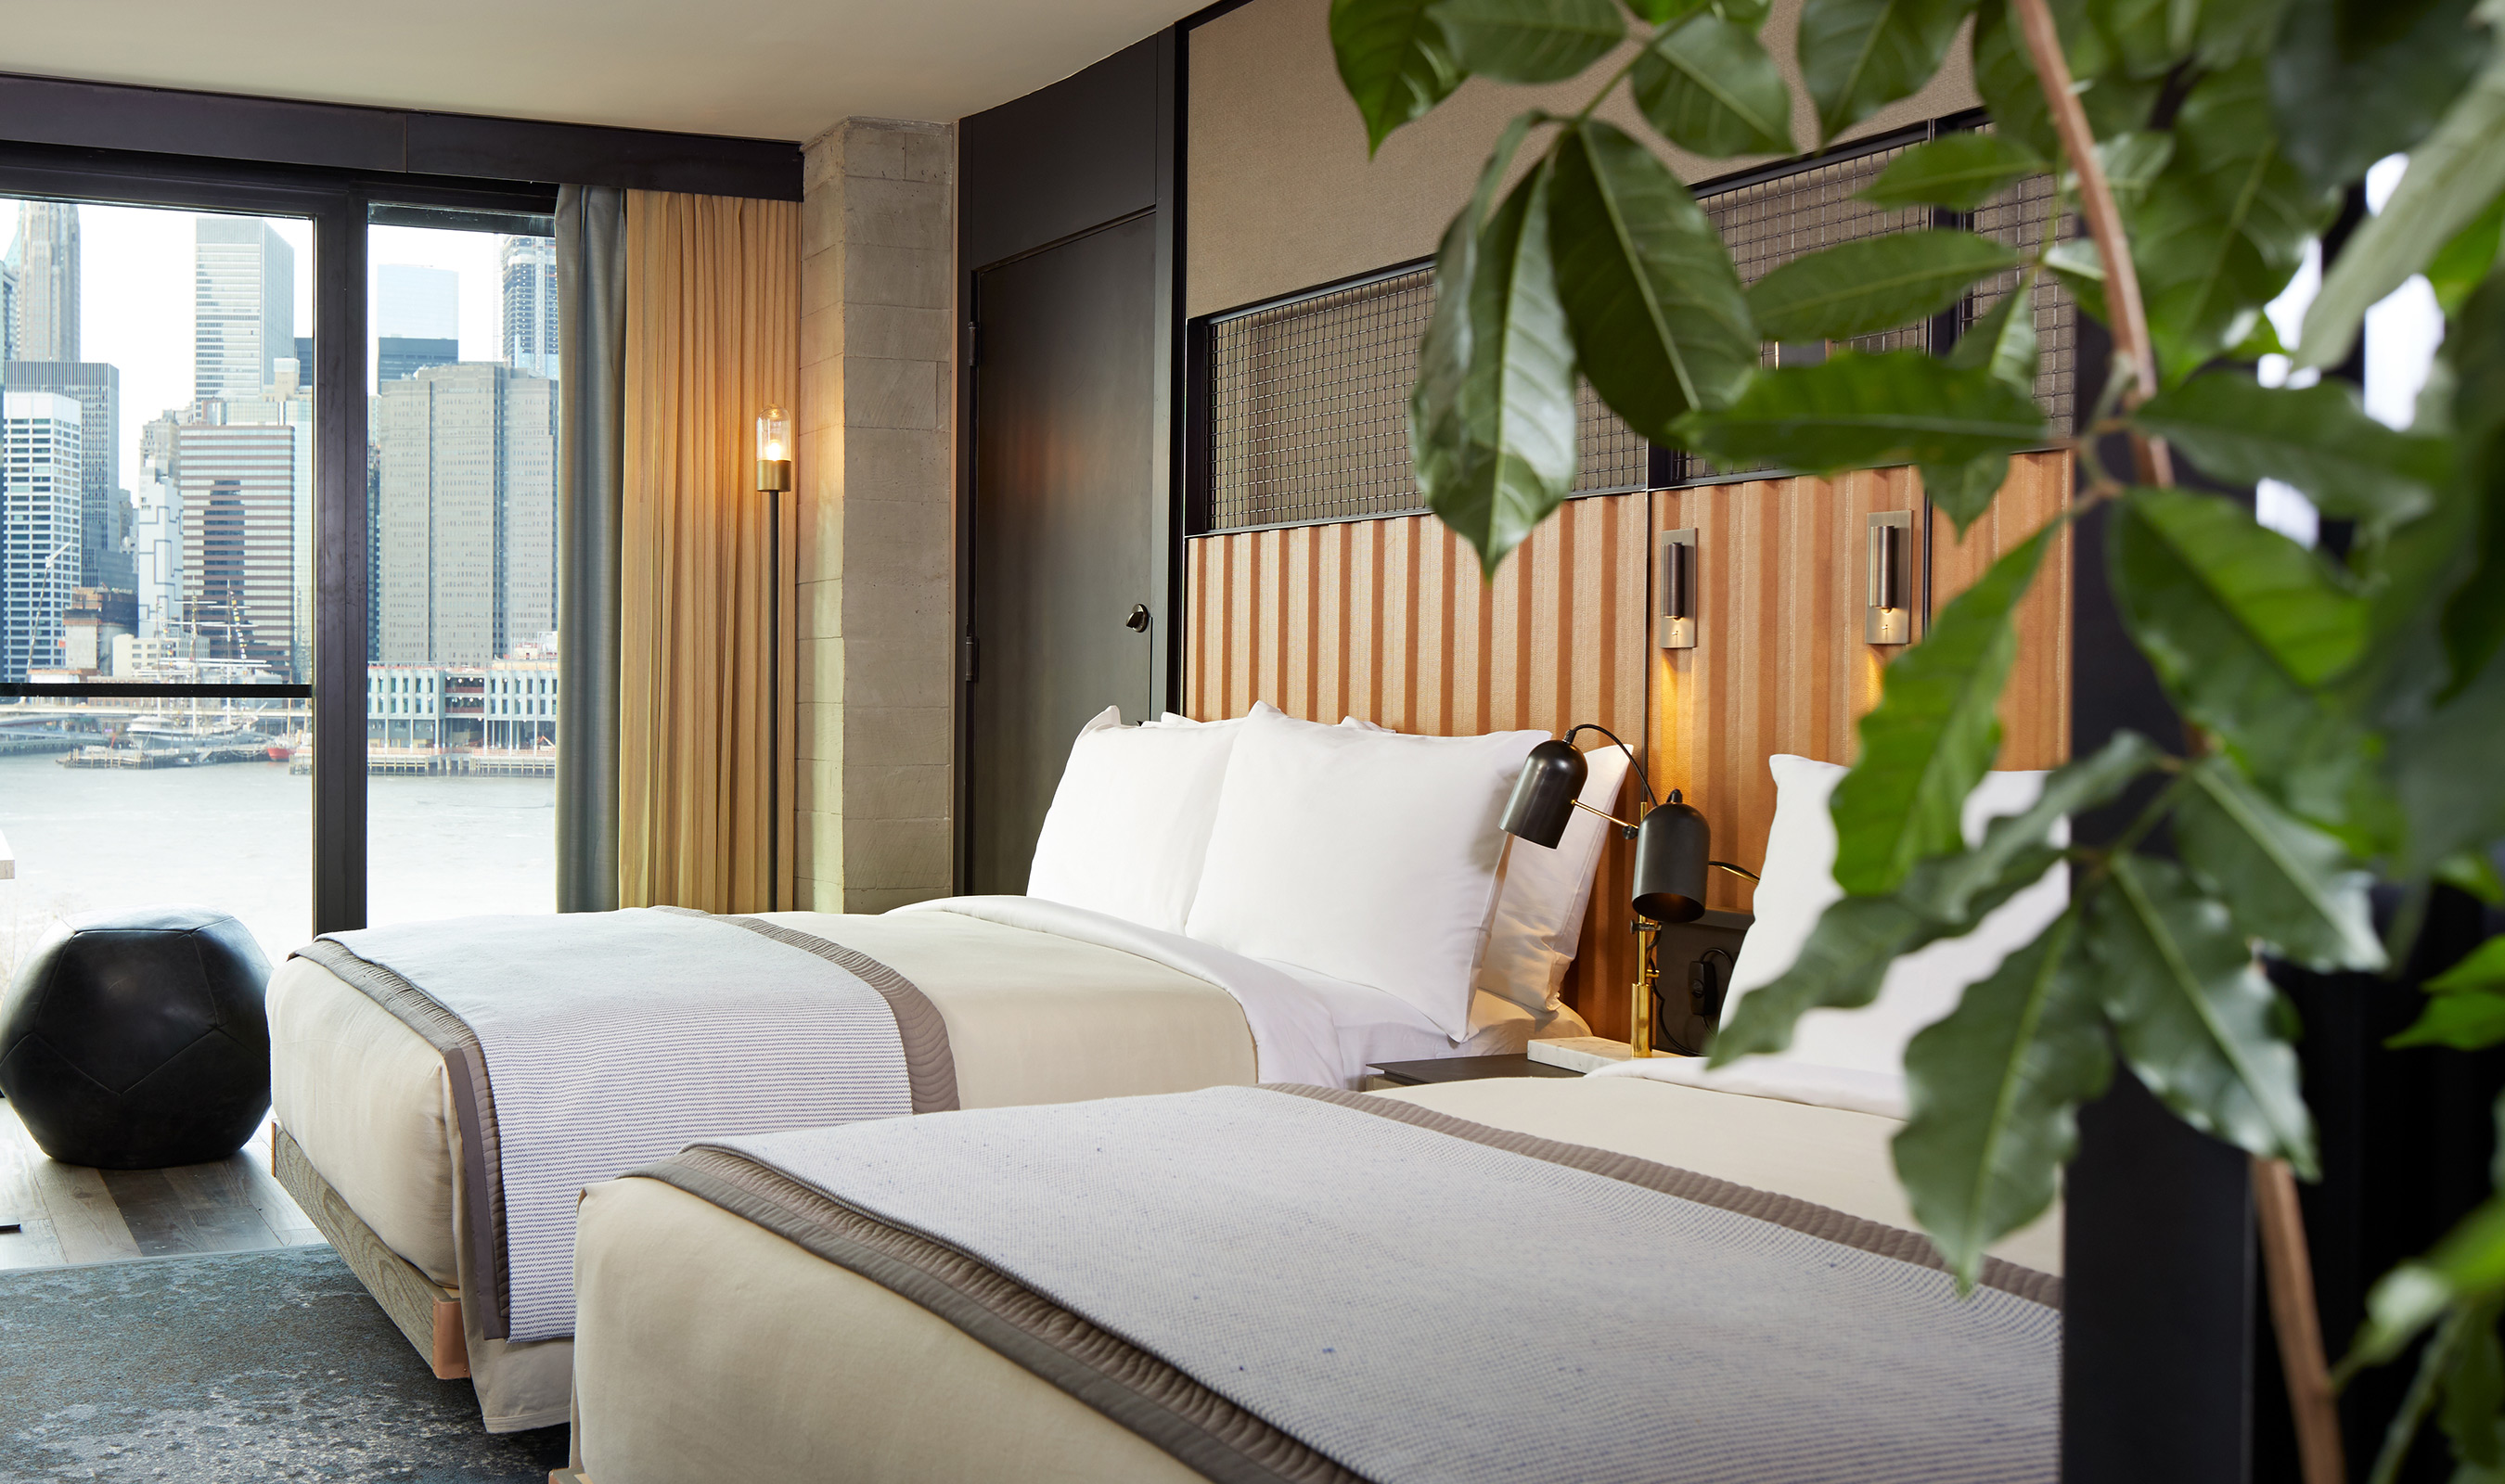 L-85 wire mesh blends well with the rooms at 1 Hotel Brooklyn Bridge to create a chic, yet cozy atmosphere.